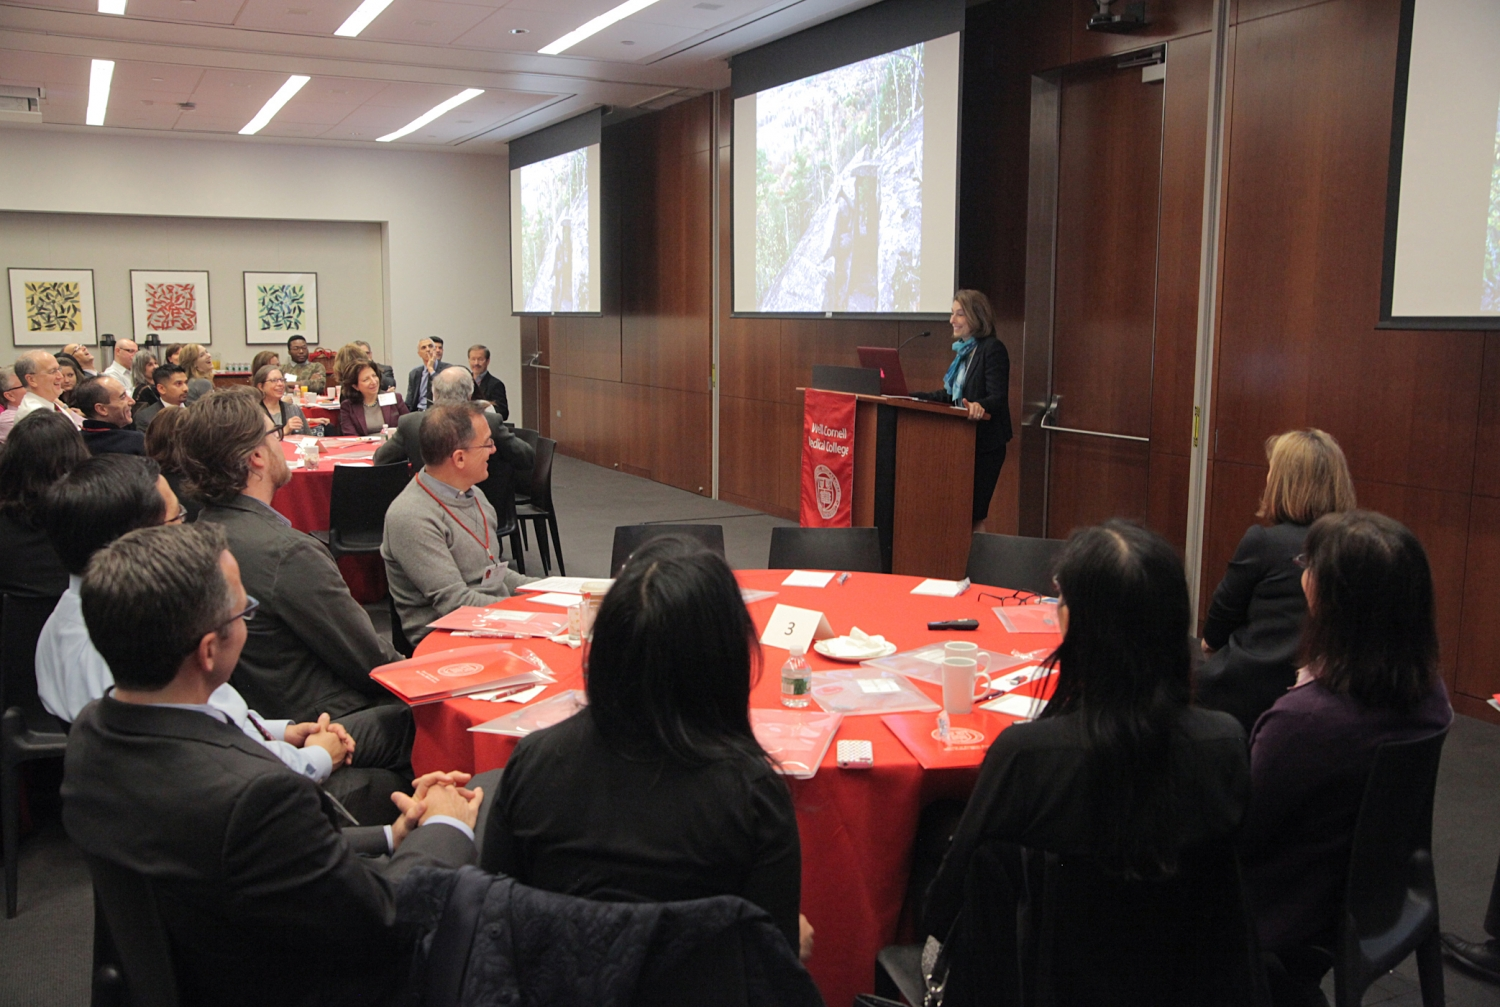 Dr. Laurie H. Glimcher discusses why social media is so important for physicians and scientists during the Office of External Affairs' inaugural Social Media Summit on Nov. 5. All photos: Ira Fox